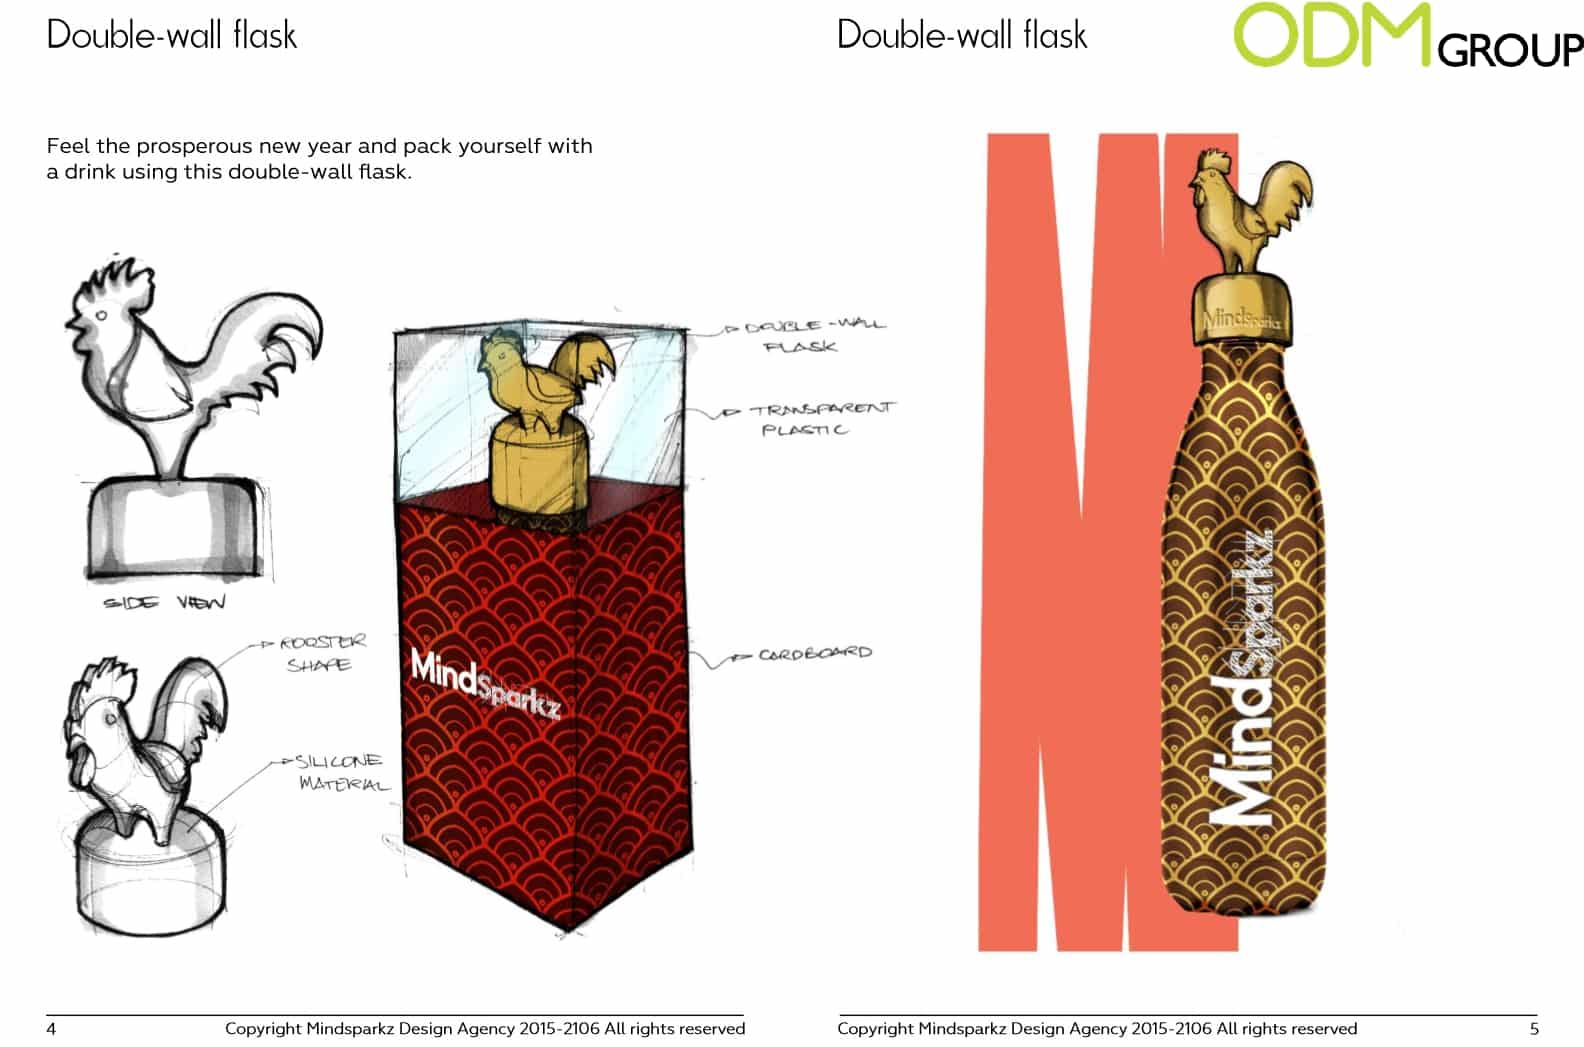 Chinese New Year Rooster Gift: Custom Double-Wall Flask